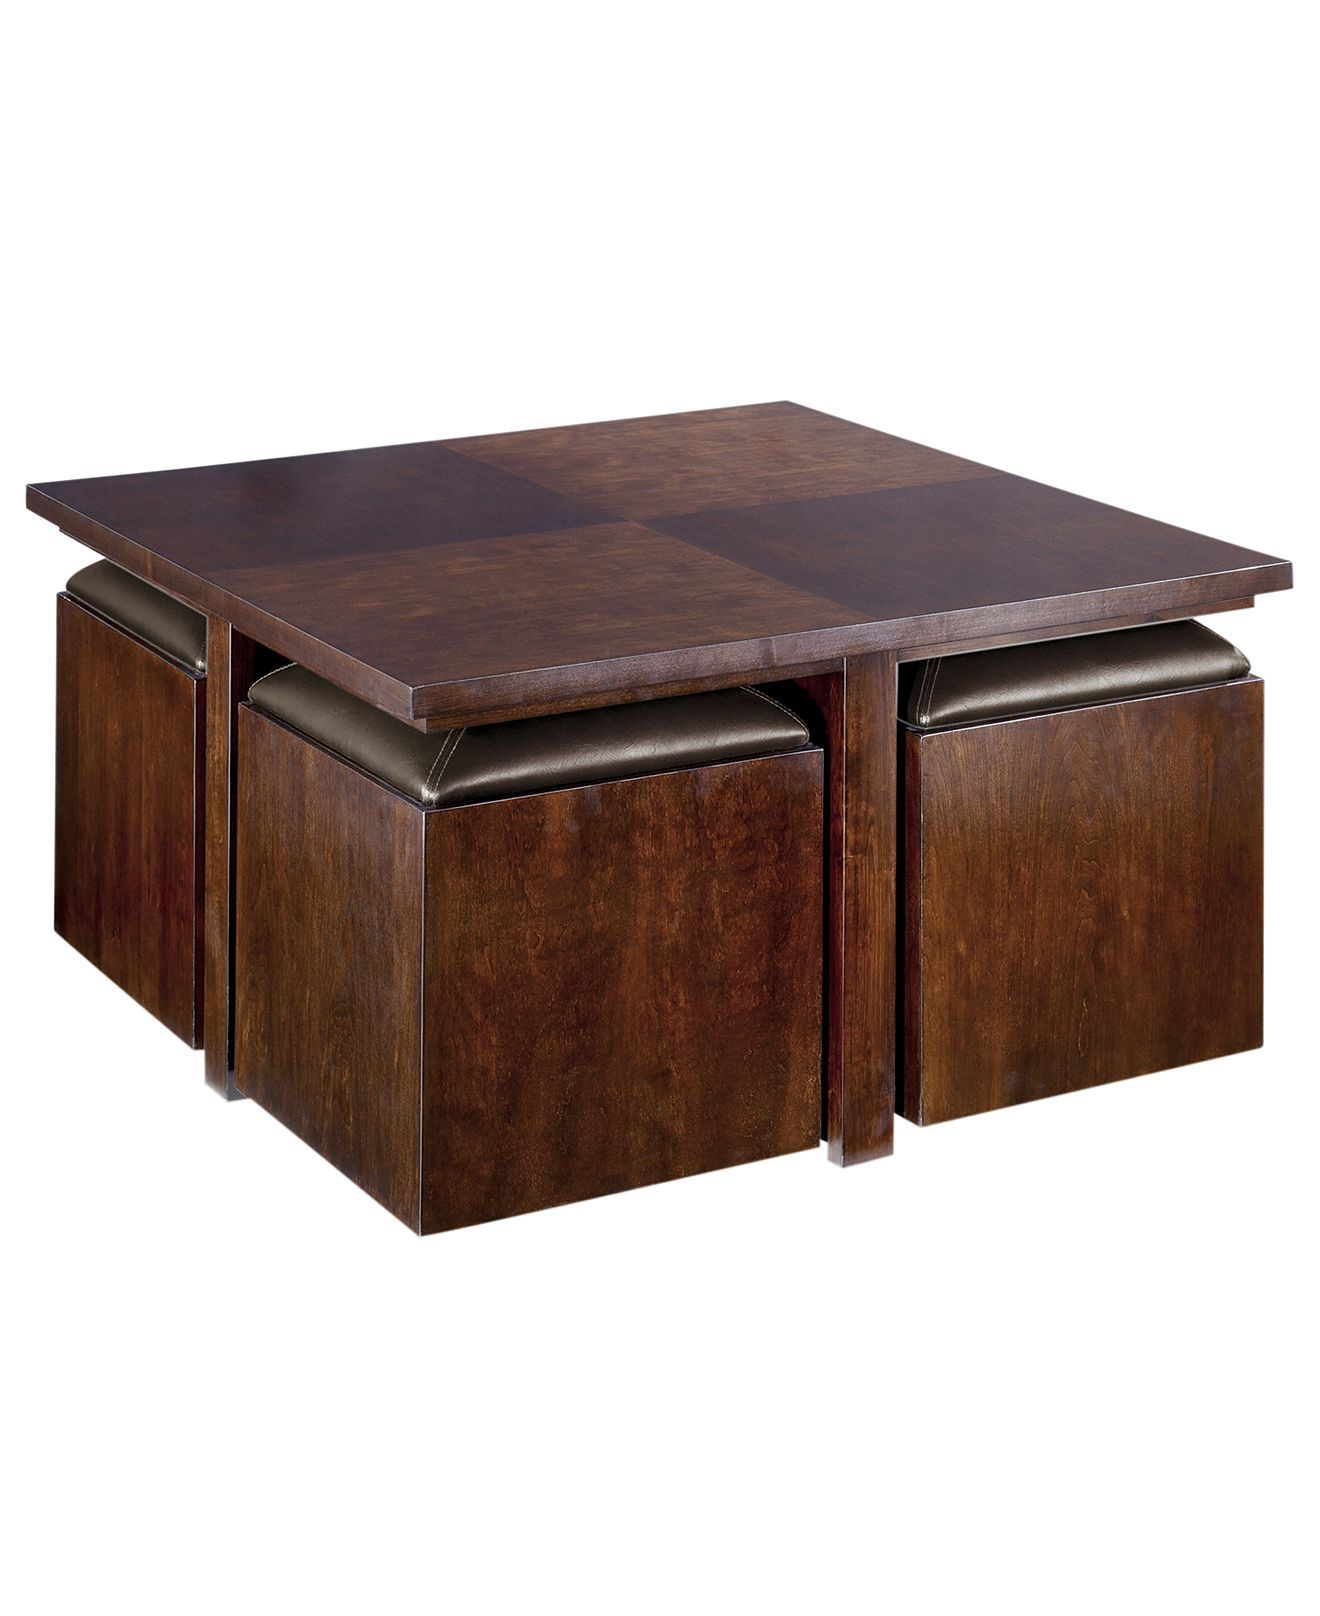 Pelham Square Tail Table With Four Storage Cubes Furniture Macy S